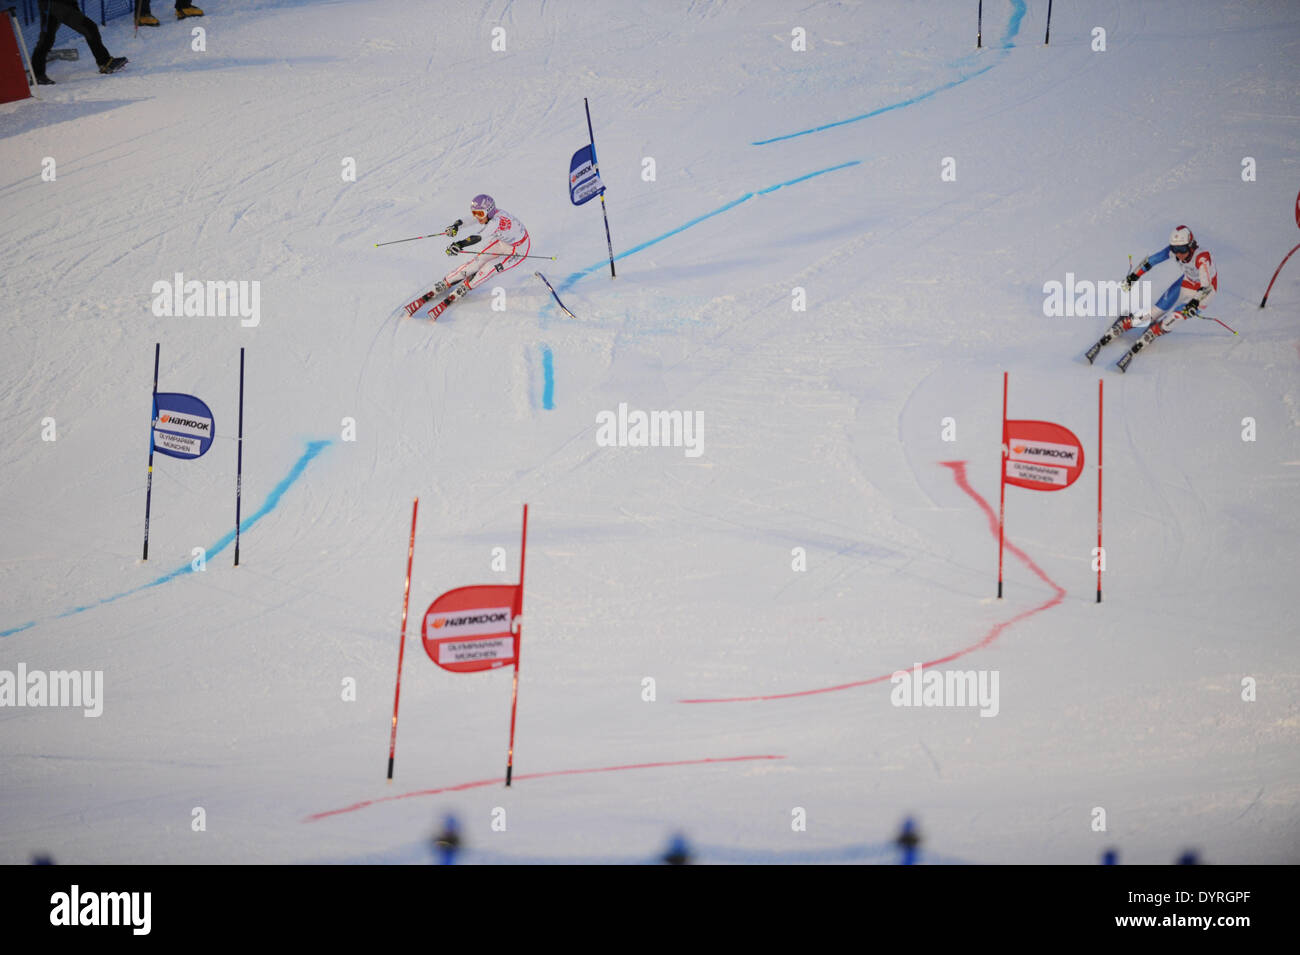 The FIS Alpine Ski World Cup, 2011 Stock Photo